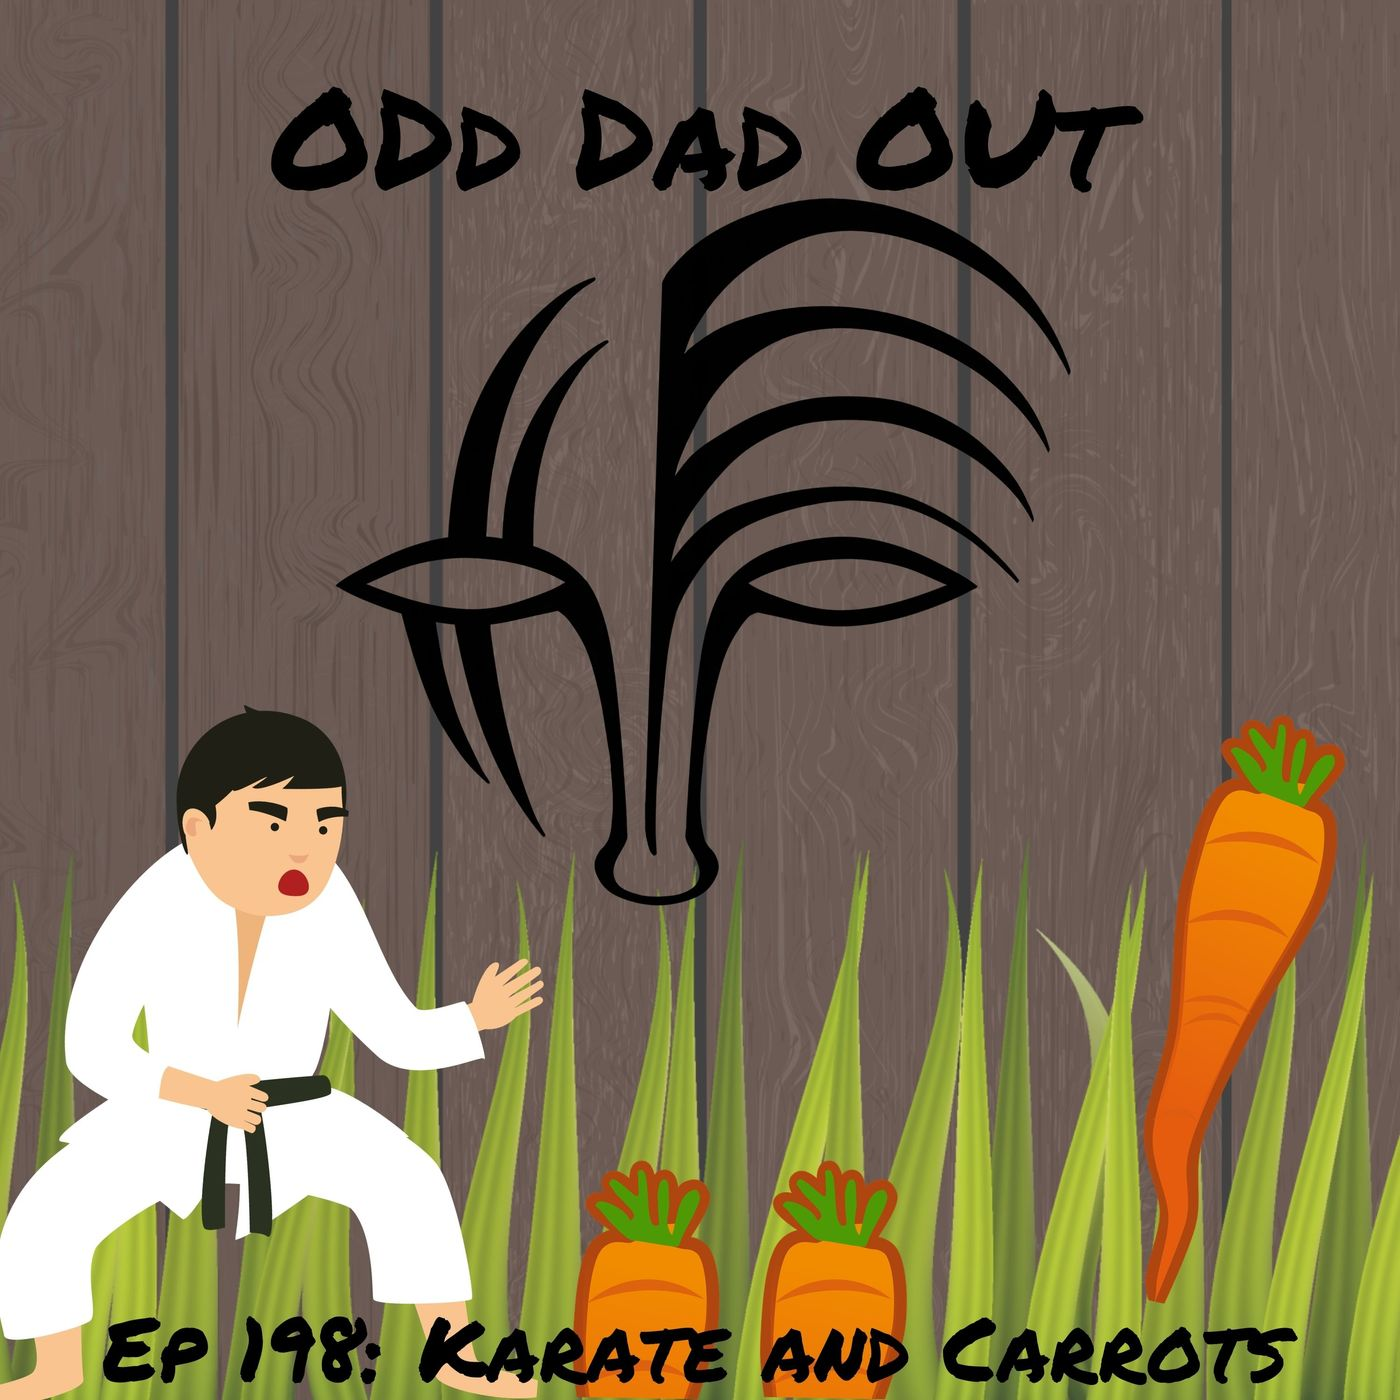 Karate and Carrots: ODO 198